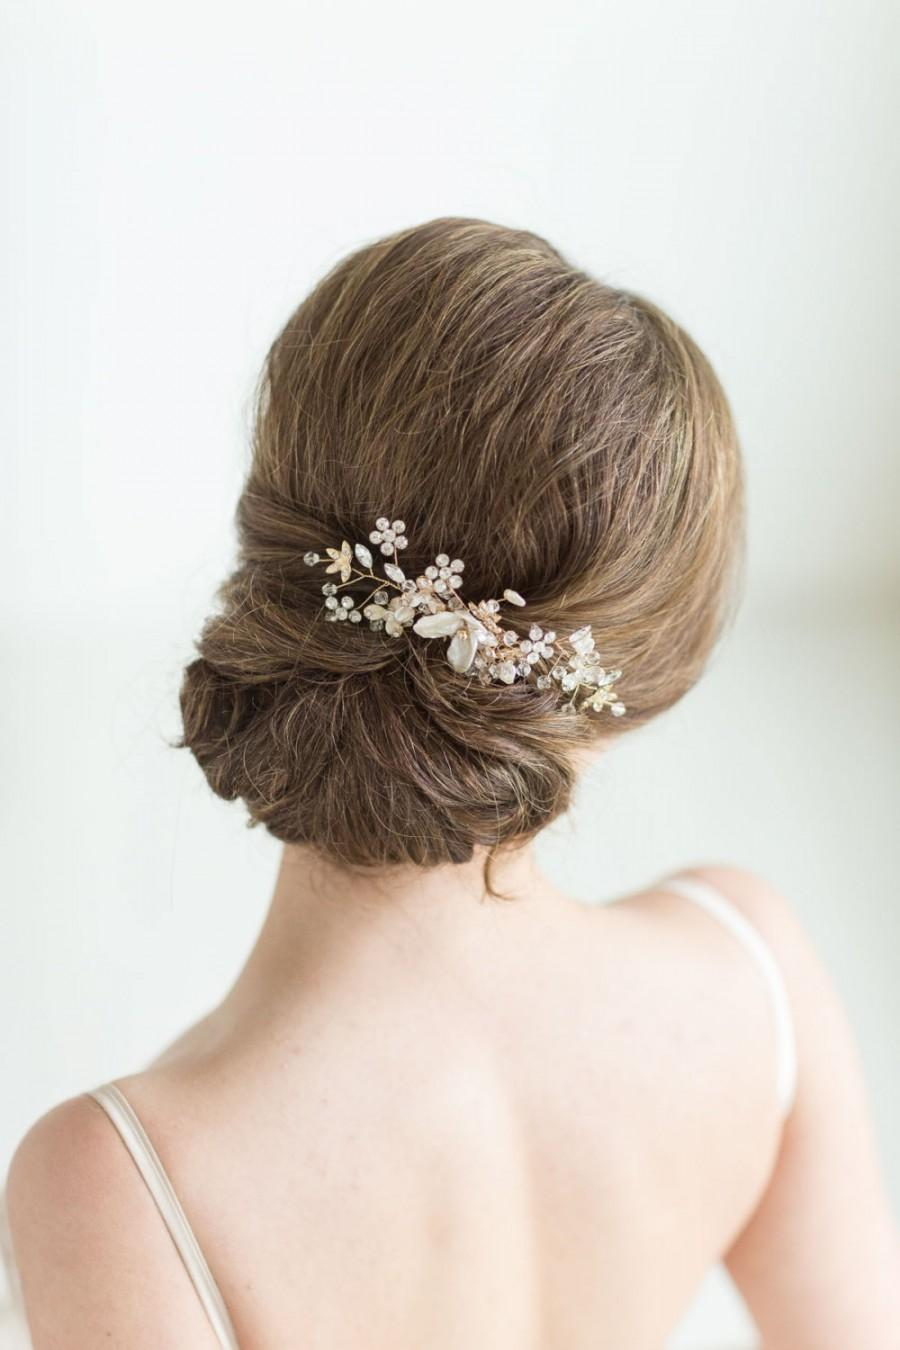 Mariage - Gold Bridal Hair comb, Wedding Head Piece, Rhinestone Hair comb, Wedding Hair Accessory